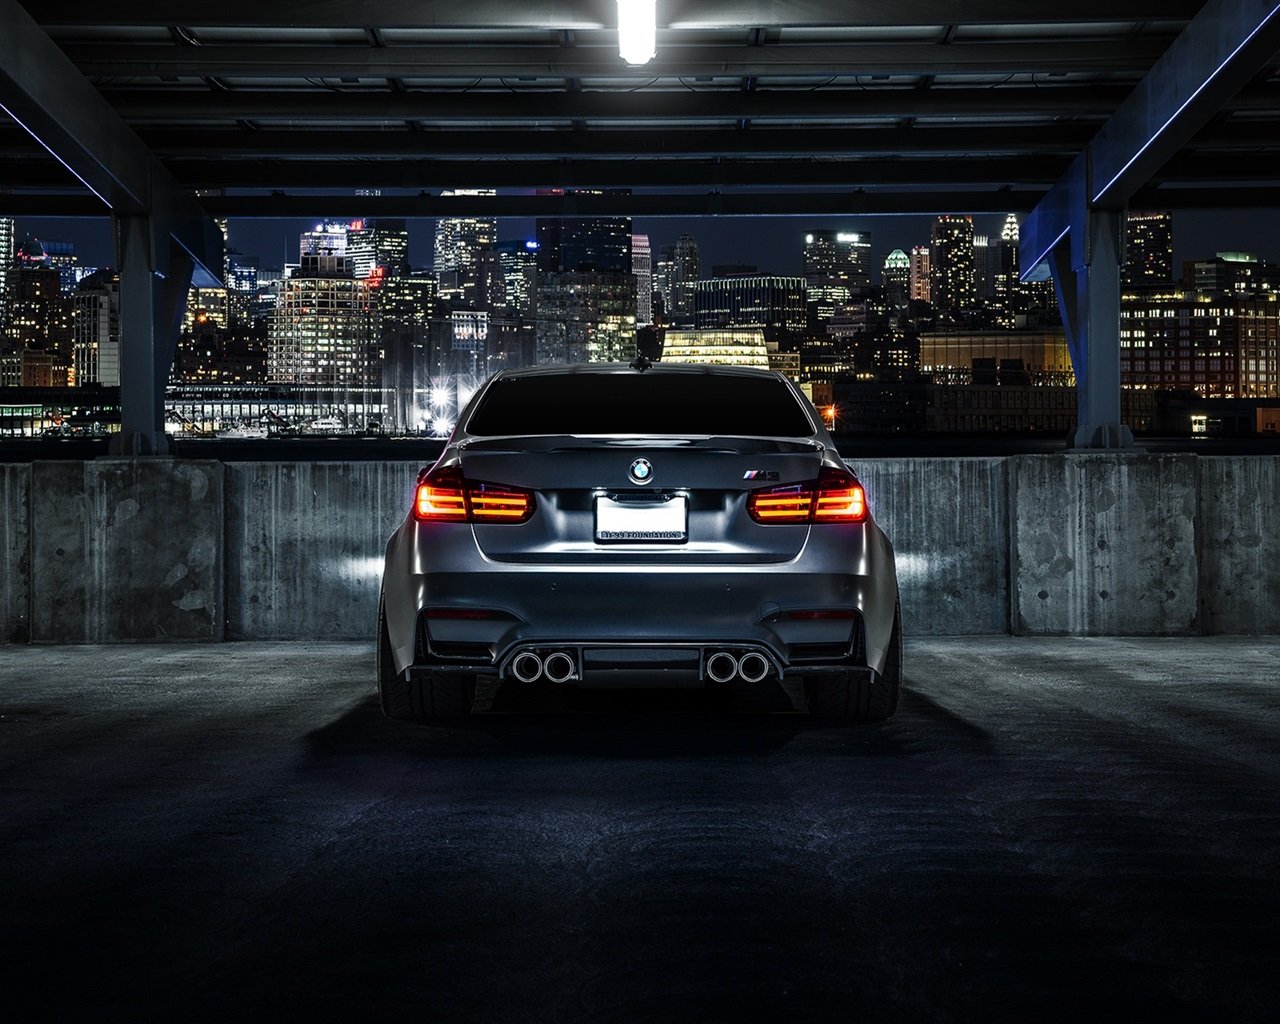 Wallpaper Bmw M3 F80 Matte Black Car Rear View Night